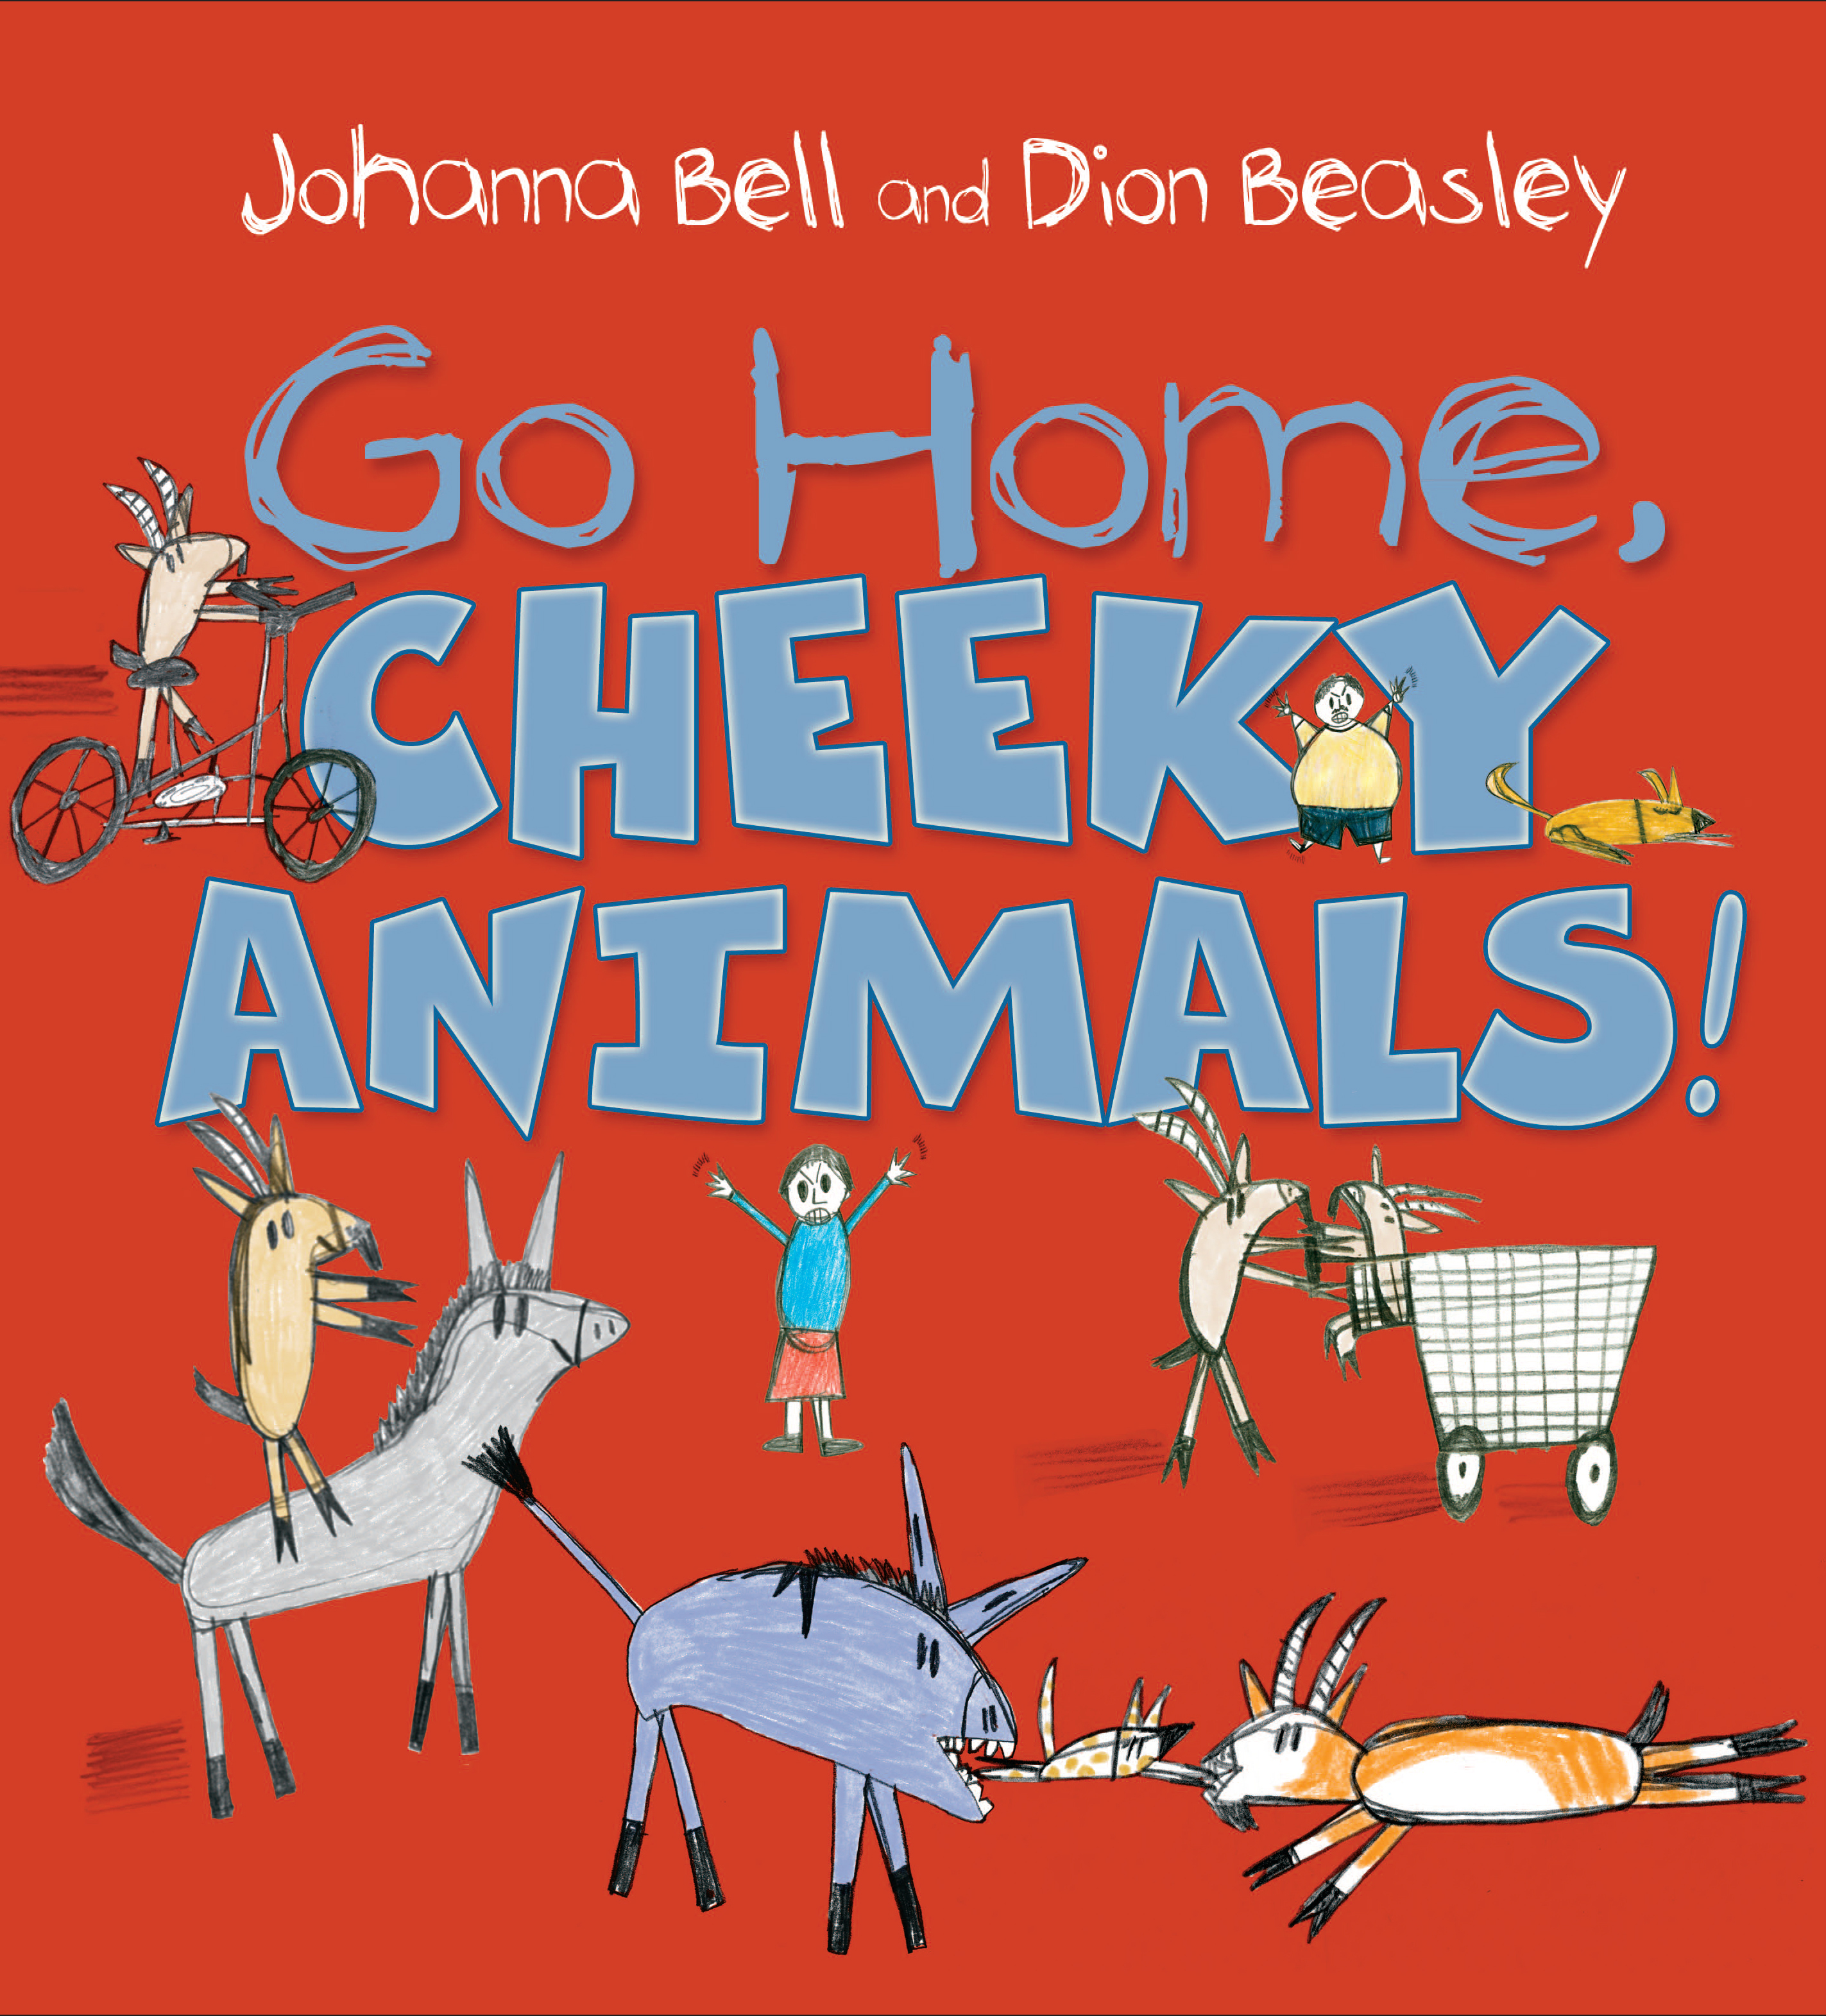 Go Home, Cheeky Animals! by Johanna Bell, Dion Beasley, ISBN: 9781760291655